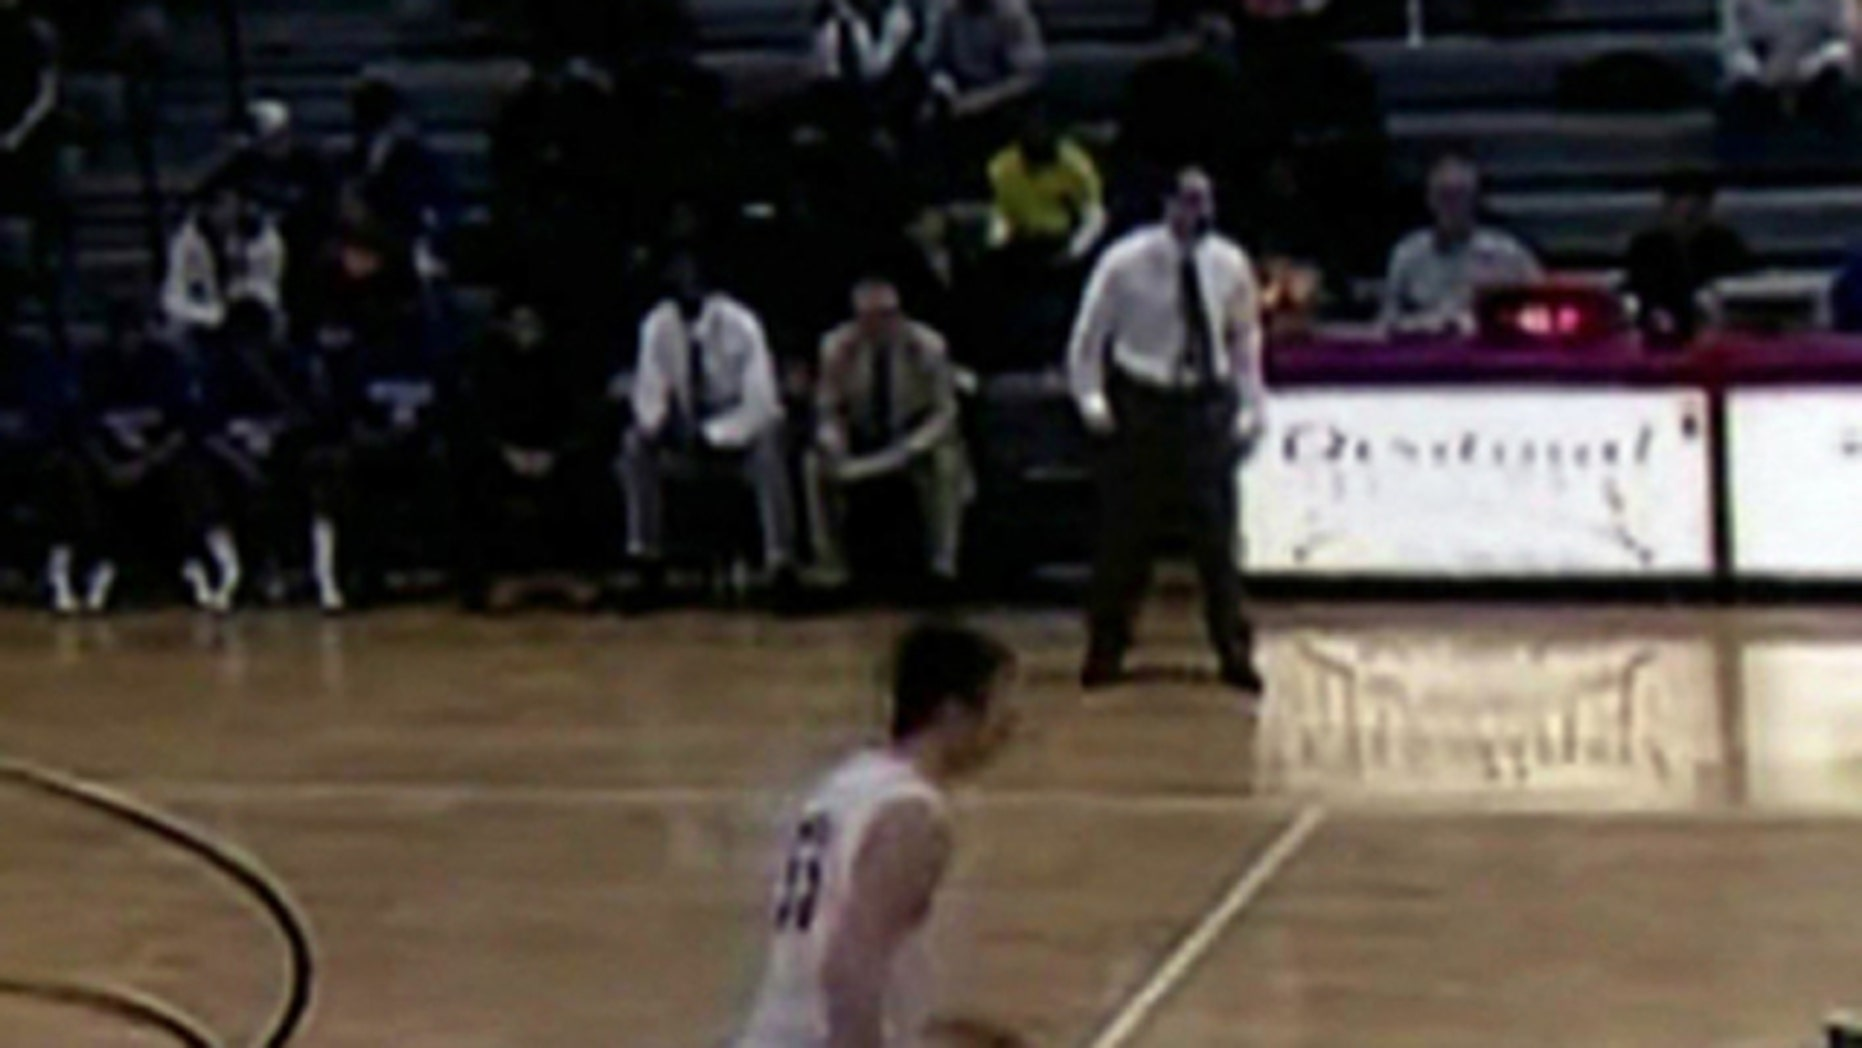 Coach Jason Popp, above, was removed from his post after racial allegations from his players